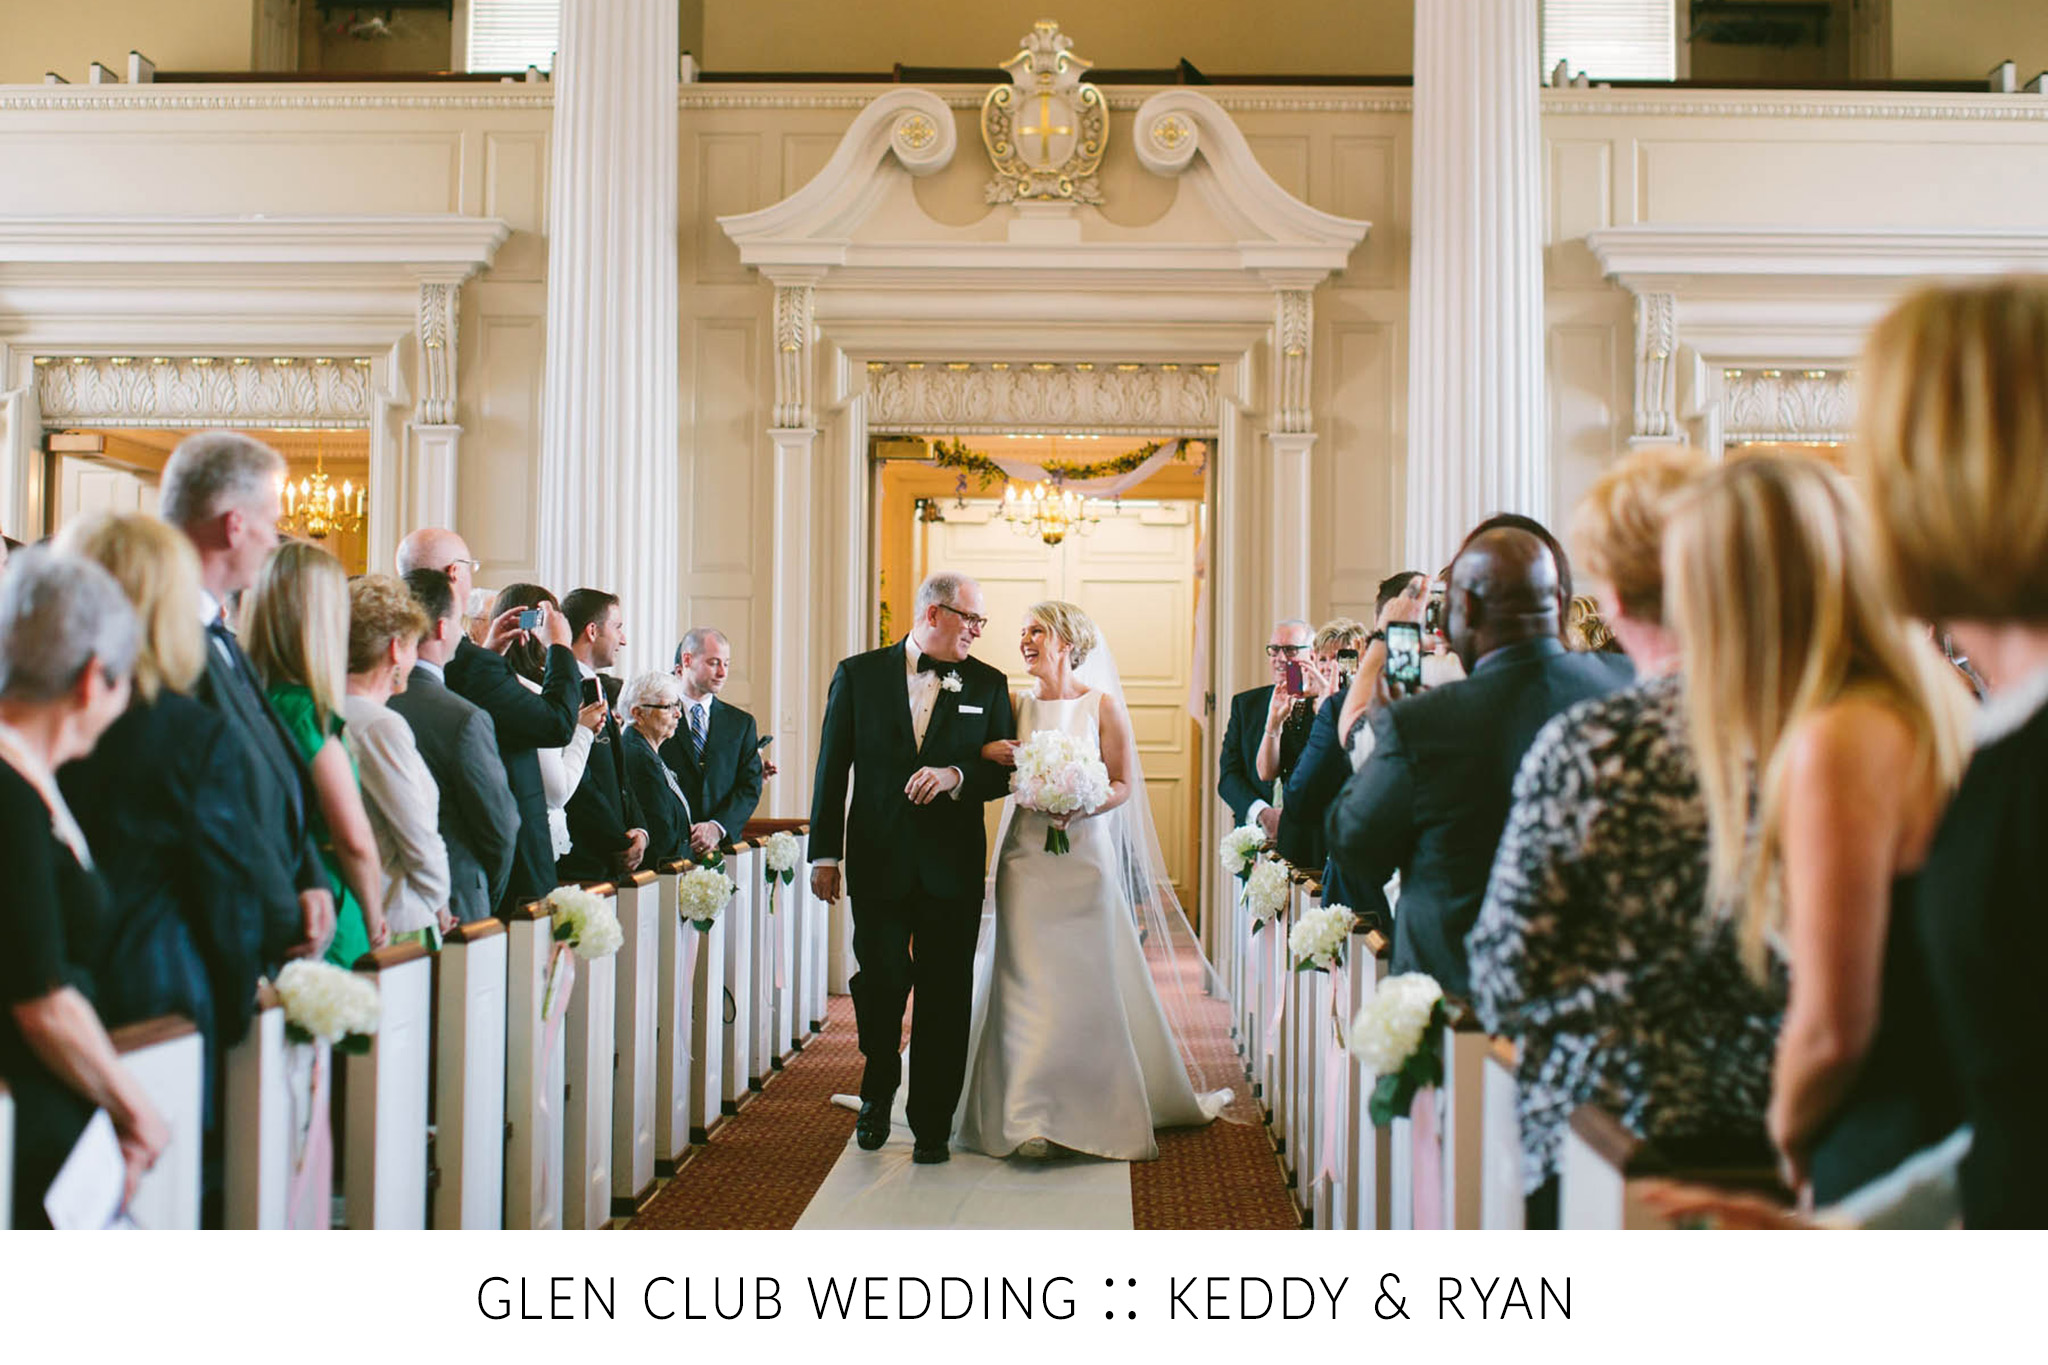 Glen Club Wedding